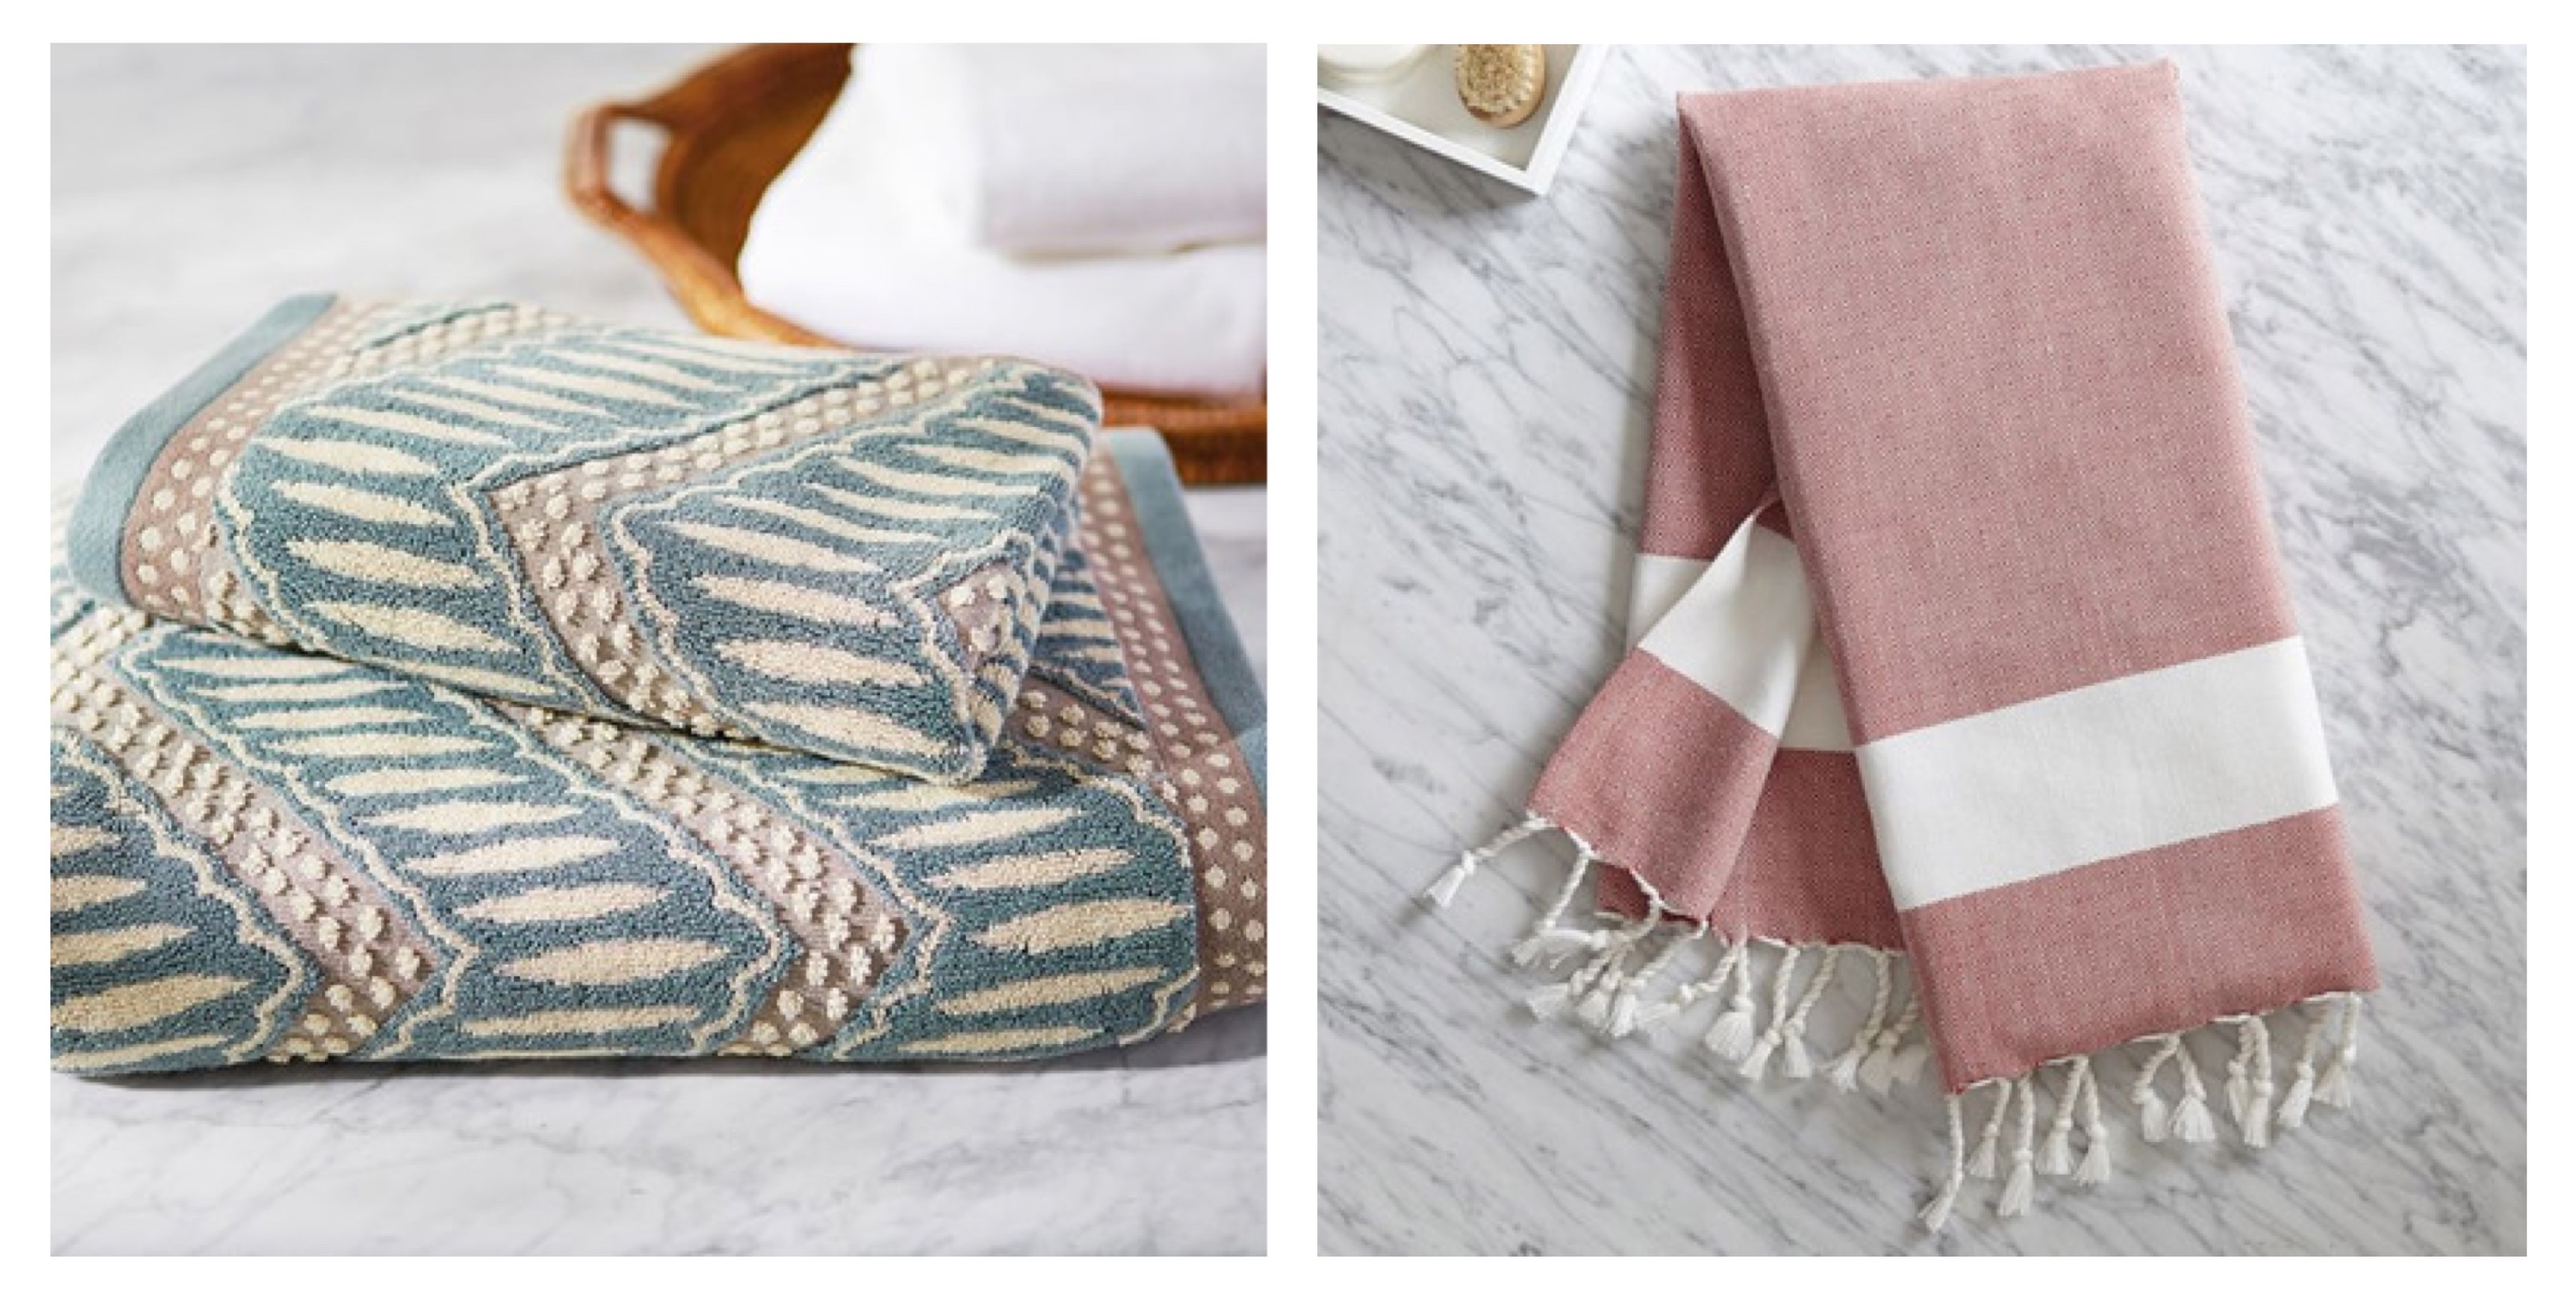 your beautiful bathroomwedding registry ideas and inspiration  - add cool and neutral hues to a bath to create a sense of calm our toweladds focal interest with just the right amount of pattern